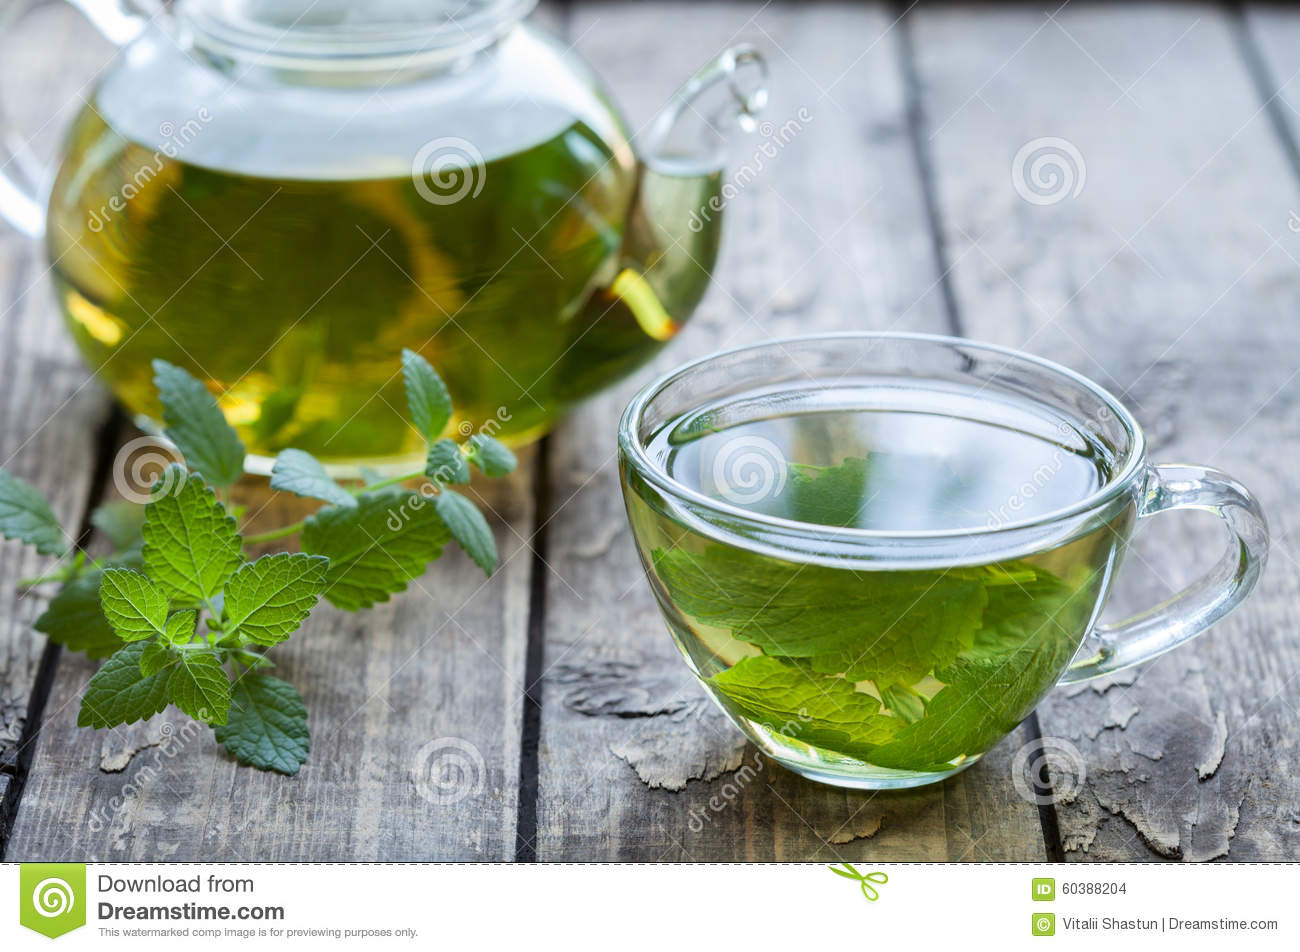 Is it possible to drink melissa tea during pregnancy 96